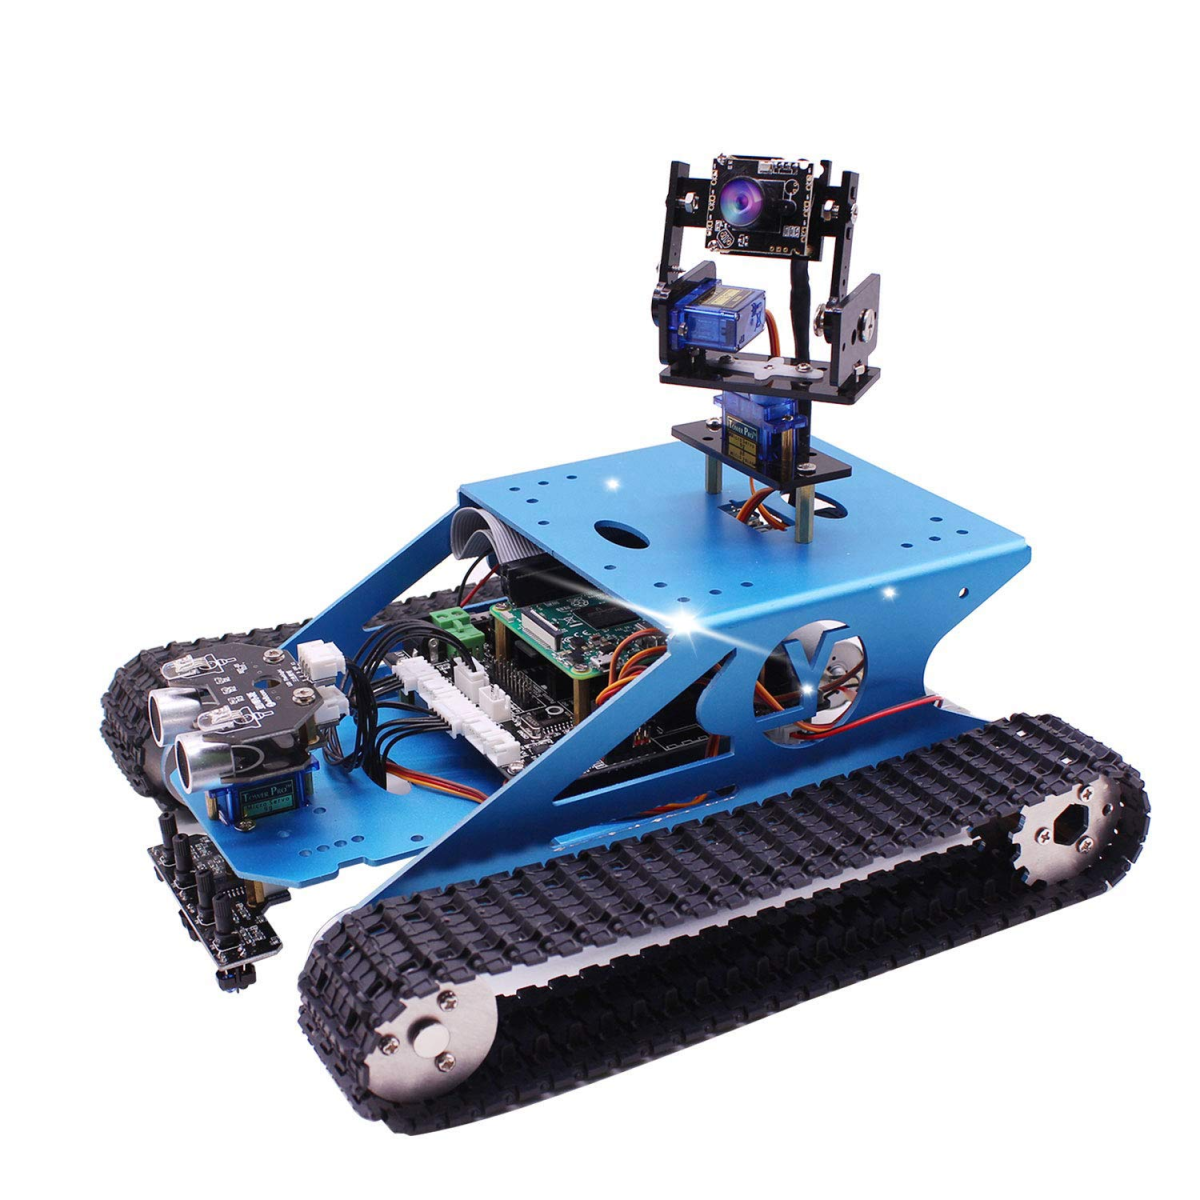 This robot tank is a high-quality kit and the perfect platform for adding your own creativity